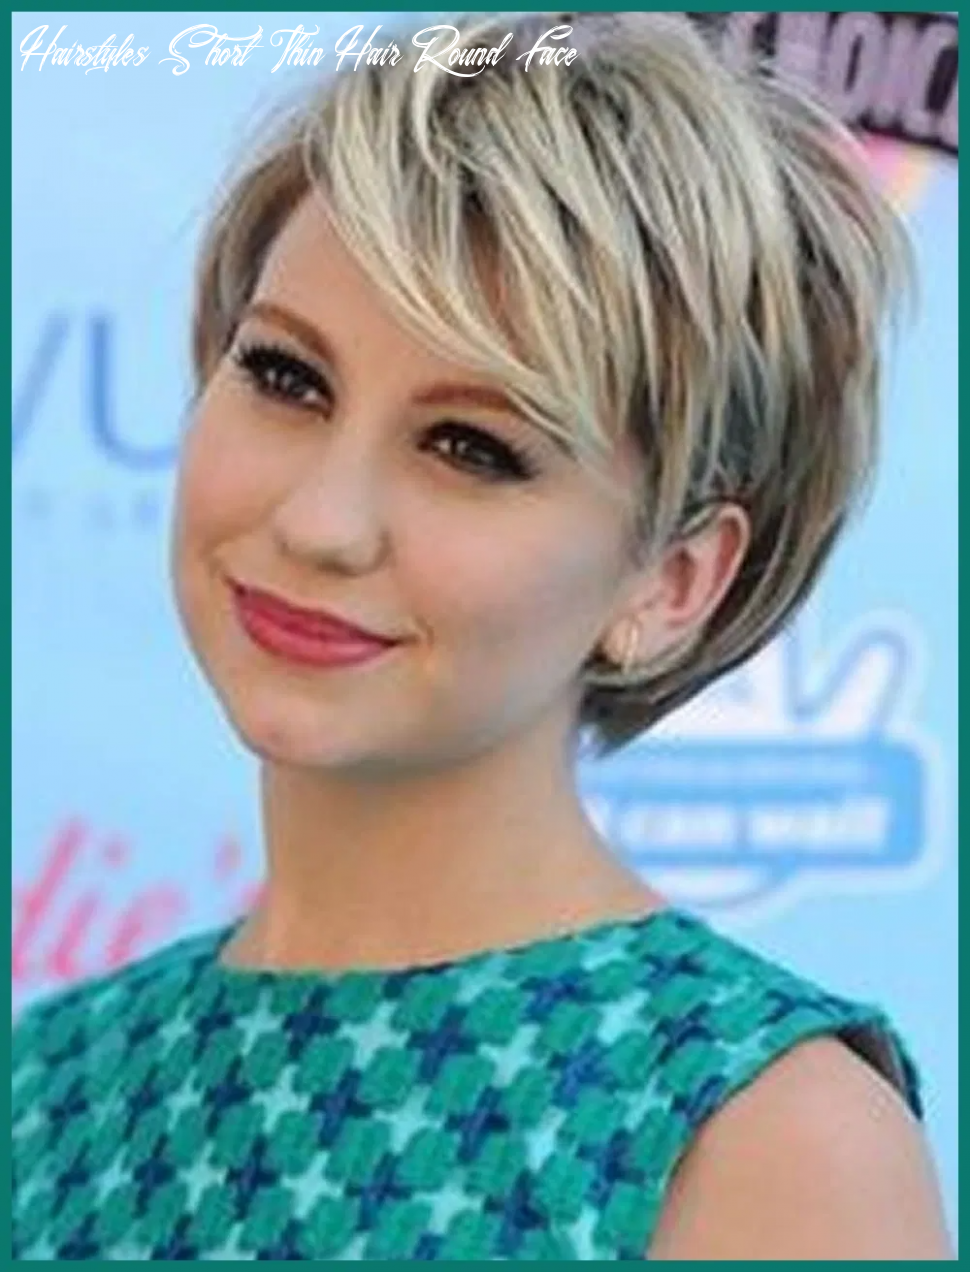 Pin on ✽ hair style ✽ hairstyles short thin hair round face